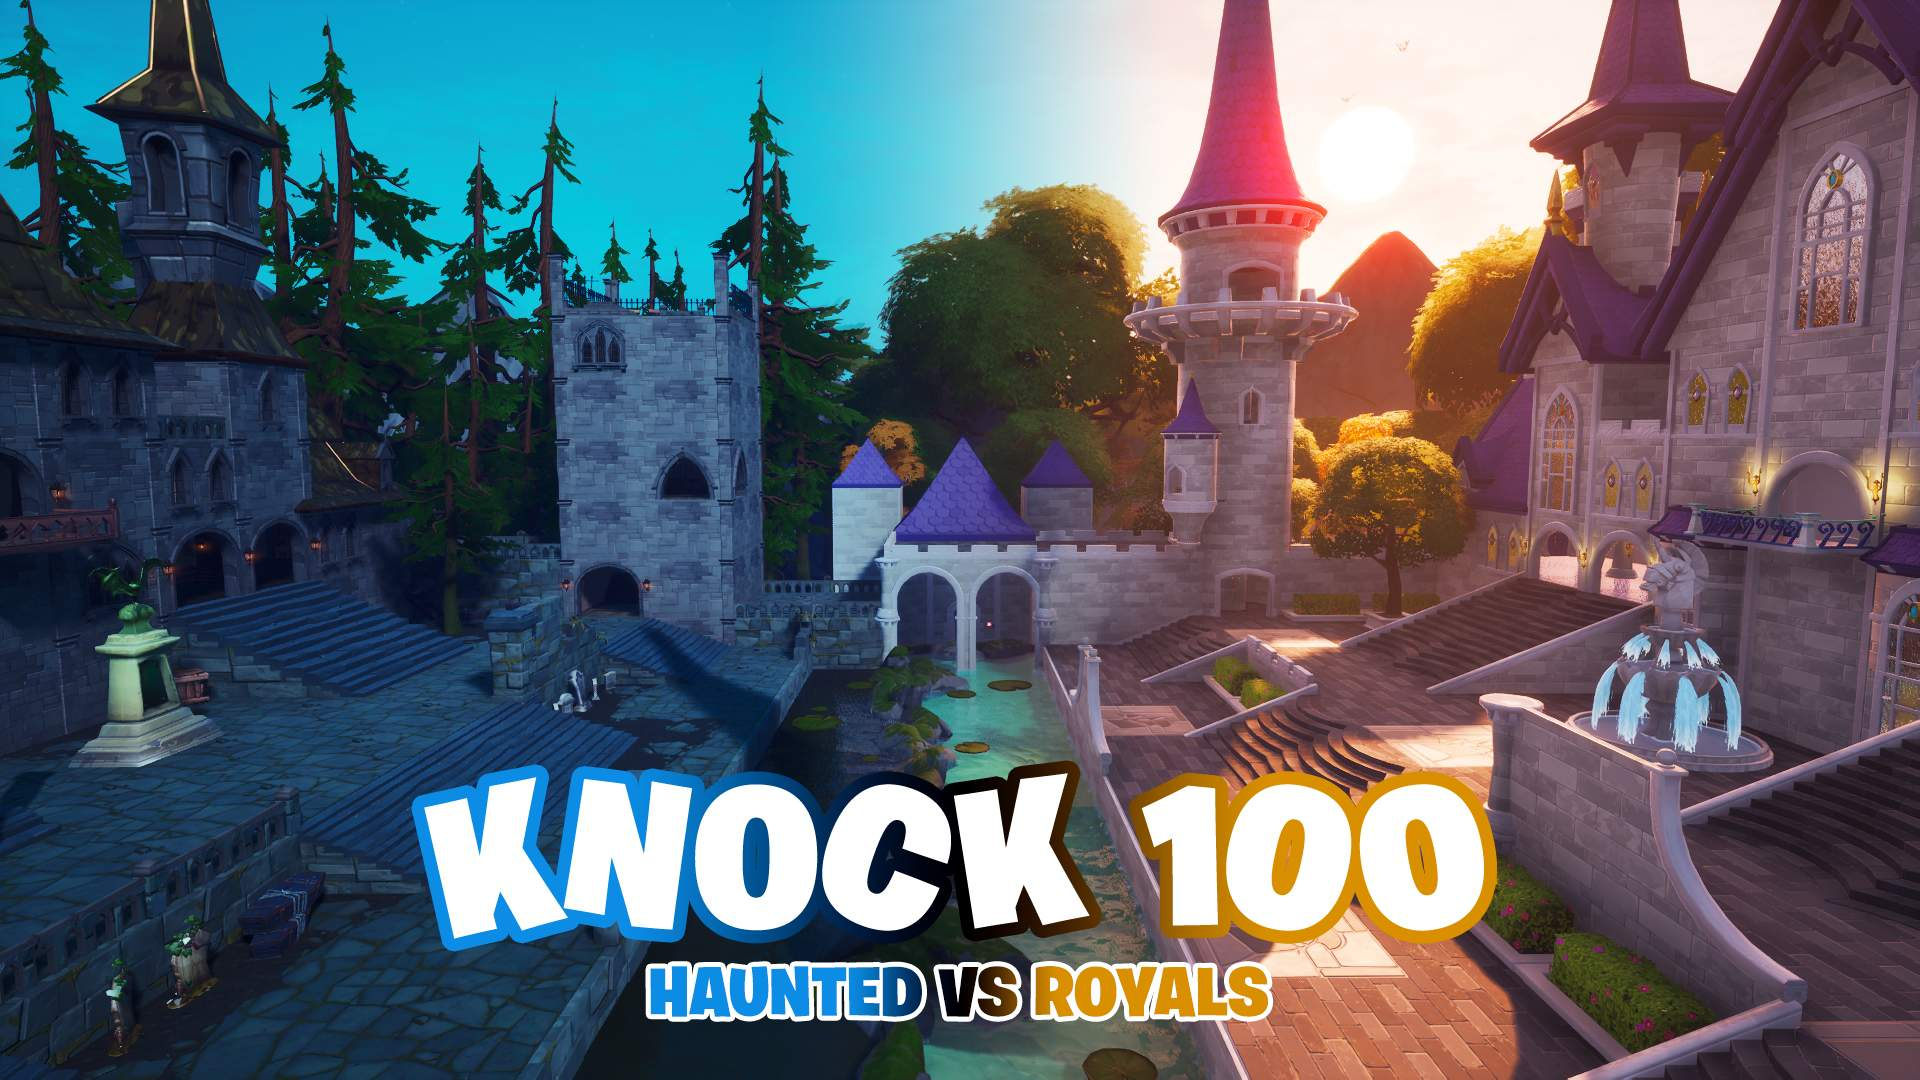 KNOCK 100 - HAUNTED VS ROYALS